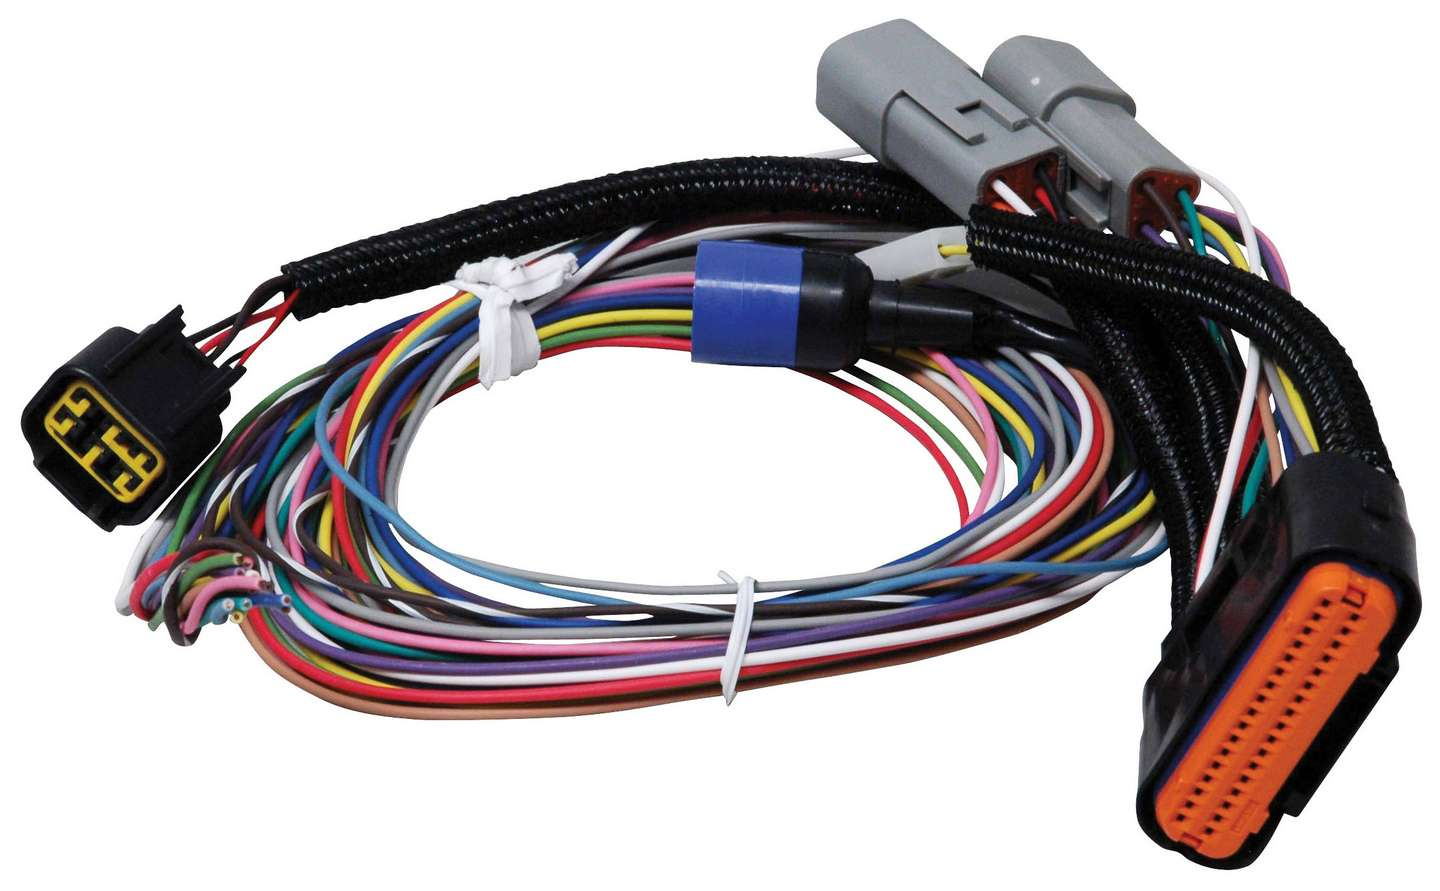 msd 7780 1 search results etheridge race parts Ford MSD Ignition Wiring Diagram at readyjetset.co